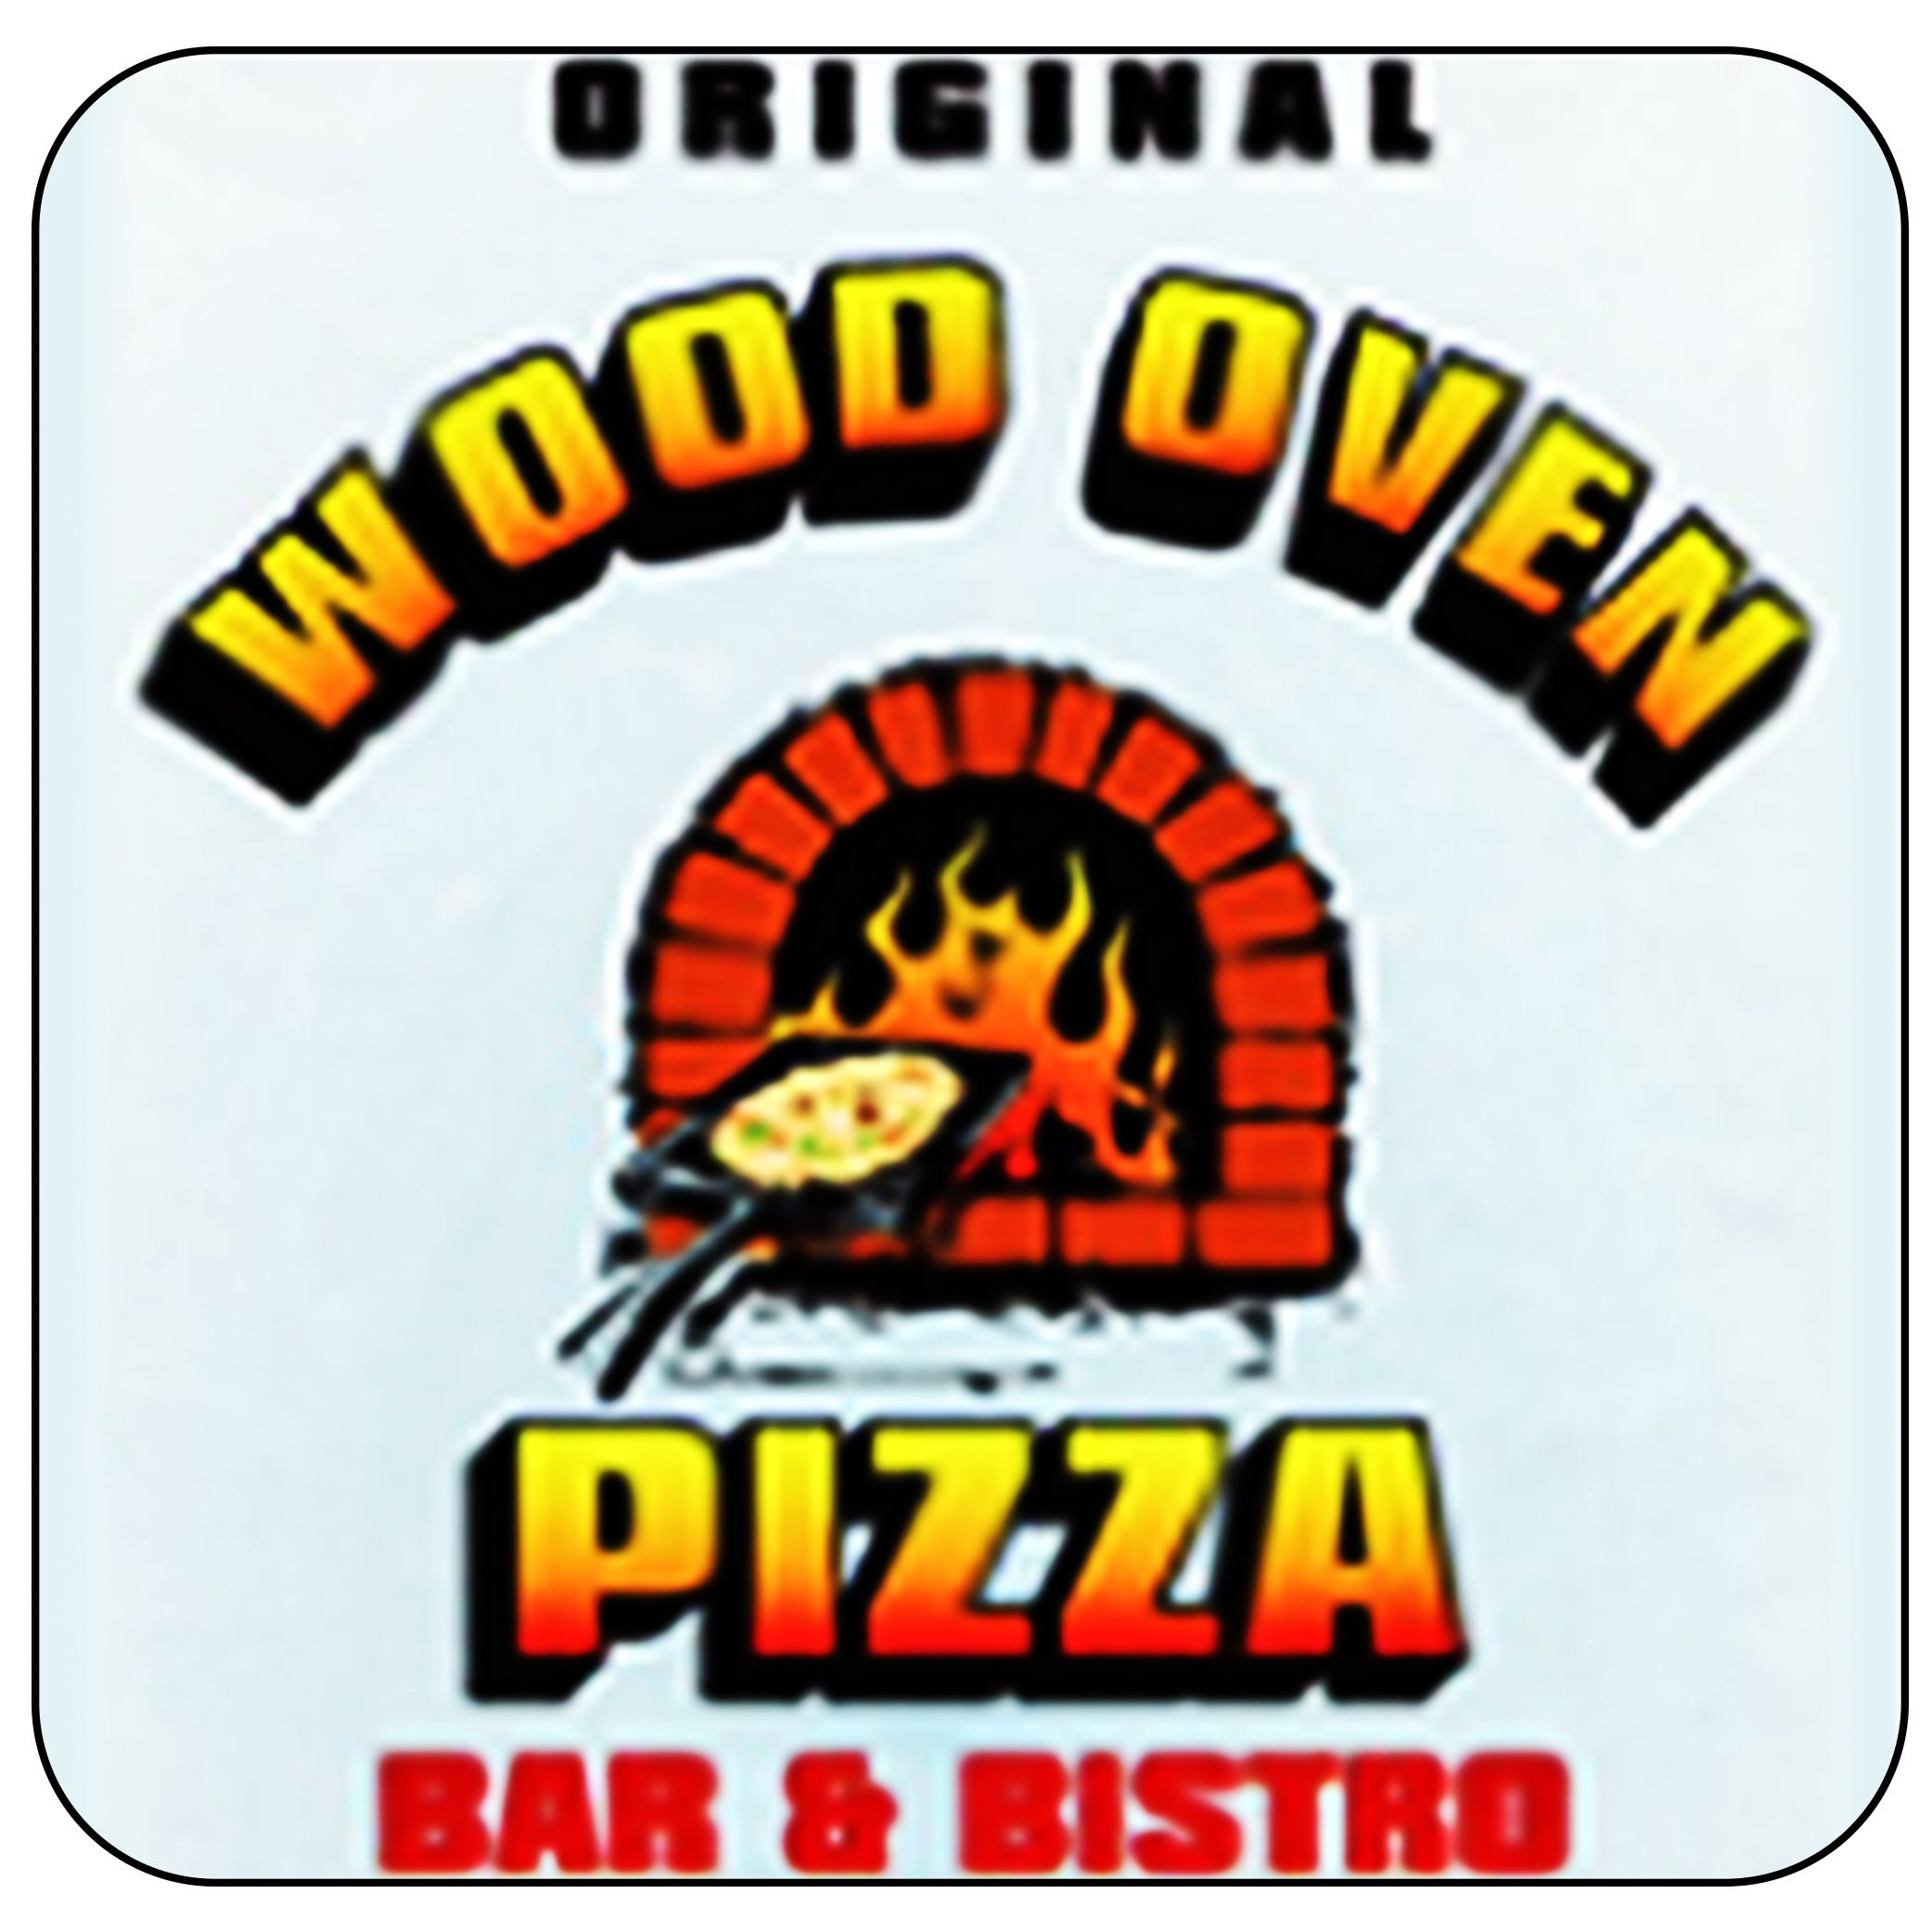 Original Wood Oven Pizza Geelong